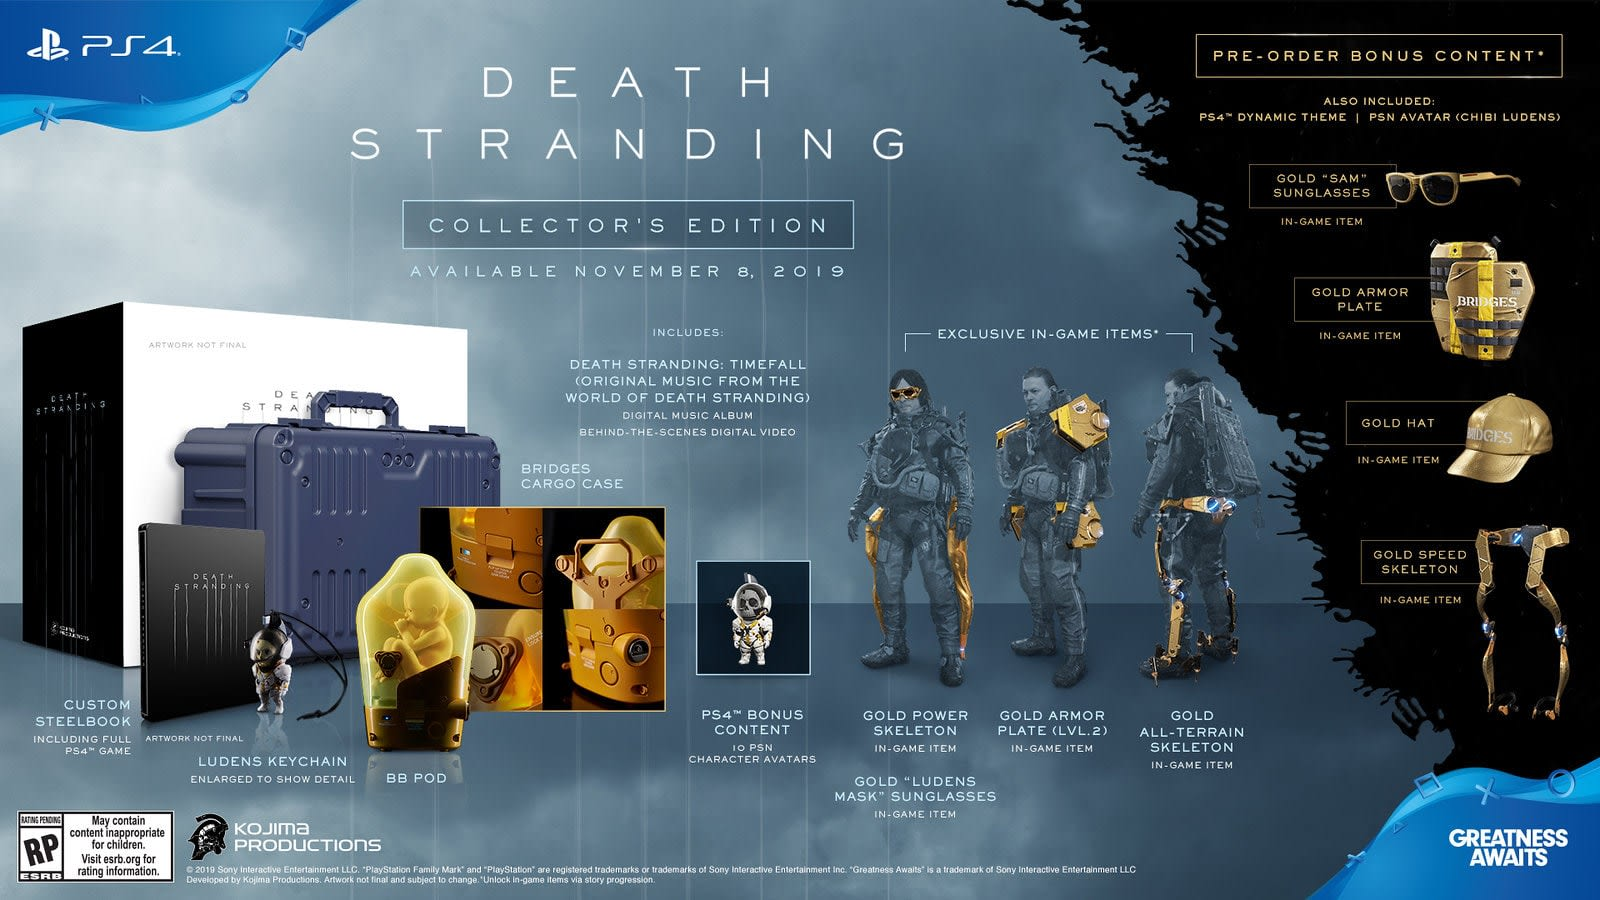 Death Stranding' special edition comes with life-sized baby